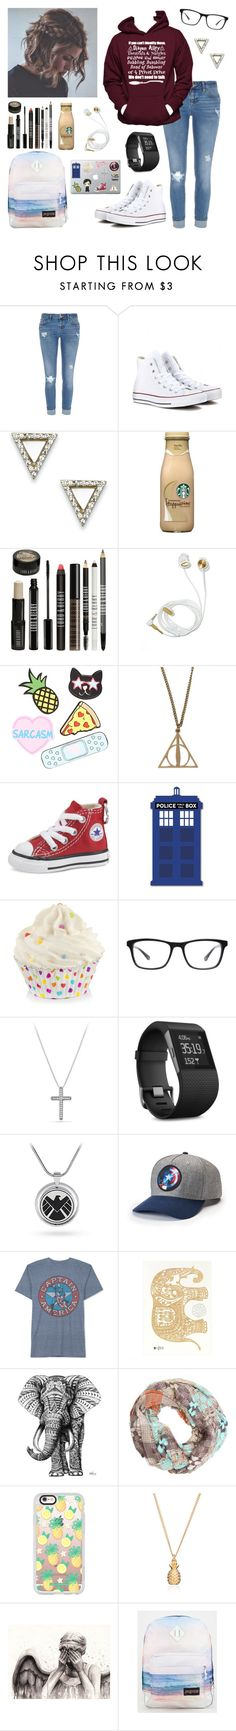 """""""2nd place goes to. ."""" by isabel-harsh ❤ liked on Polyvore featuring River Island, Converse, Sole Society, Lord & Berry, Forever 21, Joseph Marc, David Yurman, Fitbit, JEM and INC International Concepts"""